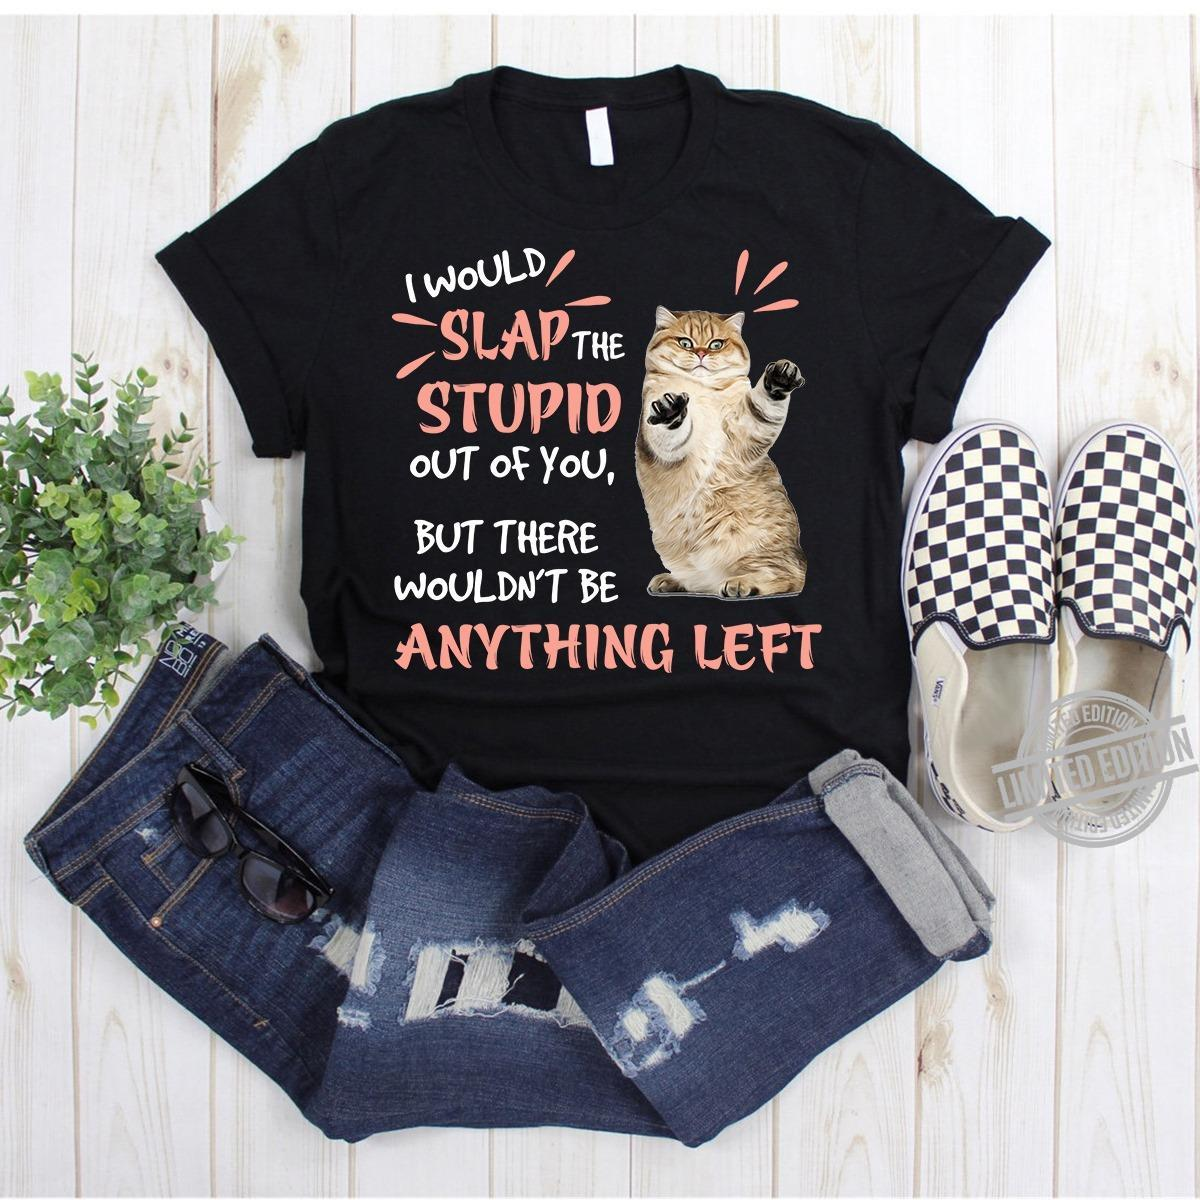 I Would Slap The Stupid Out Of You But There Wouldn't Be Anything Left Shirt